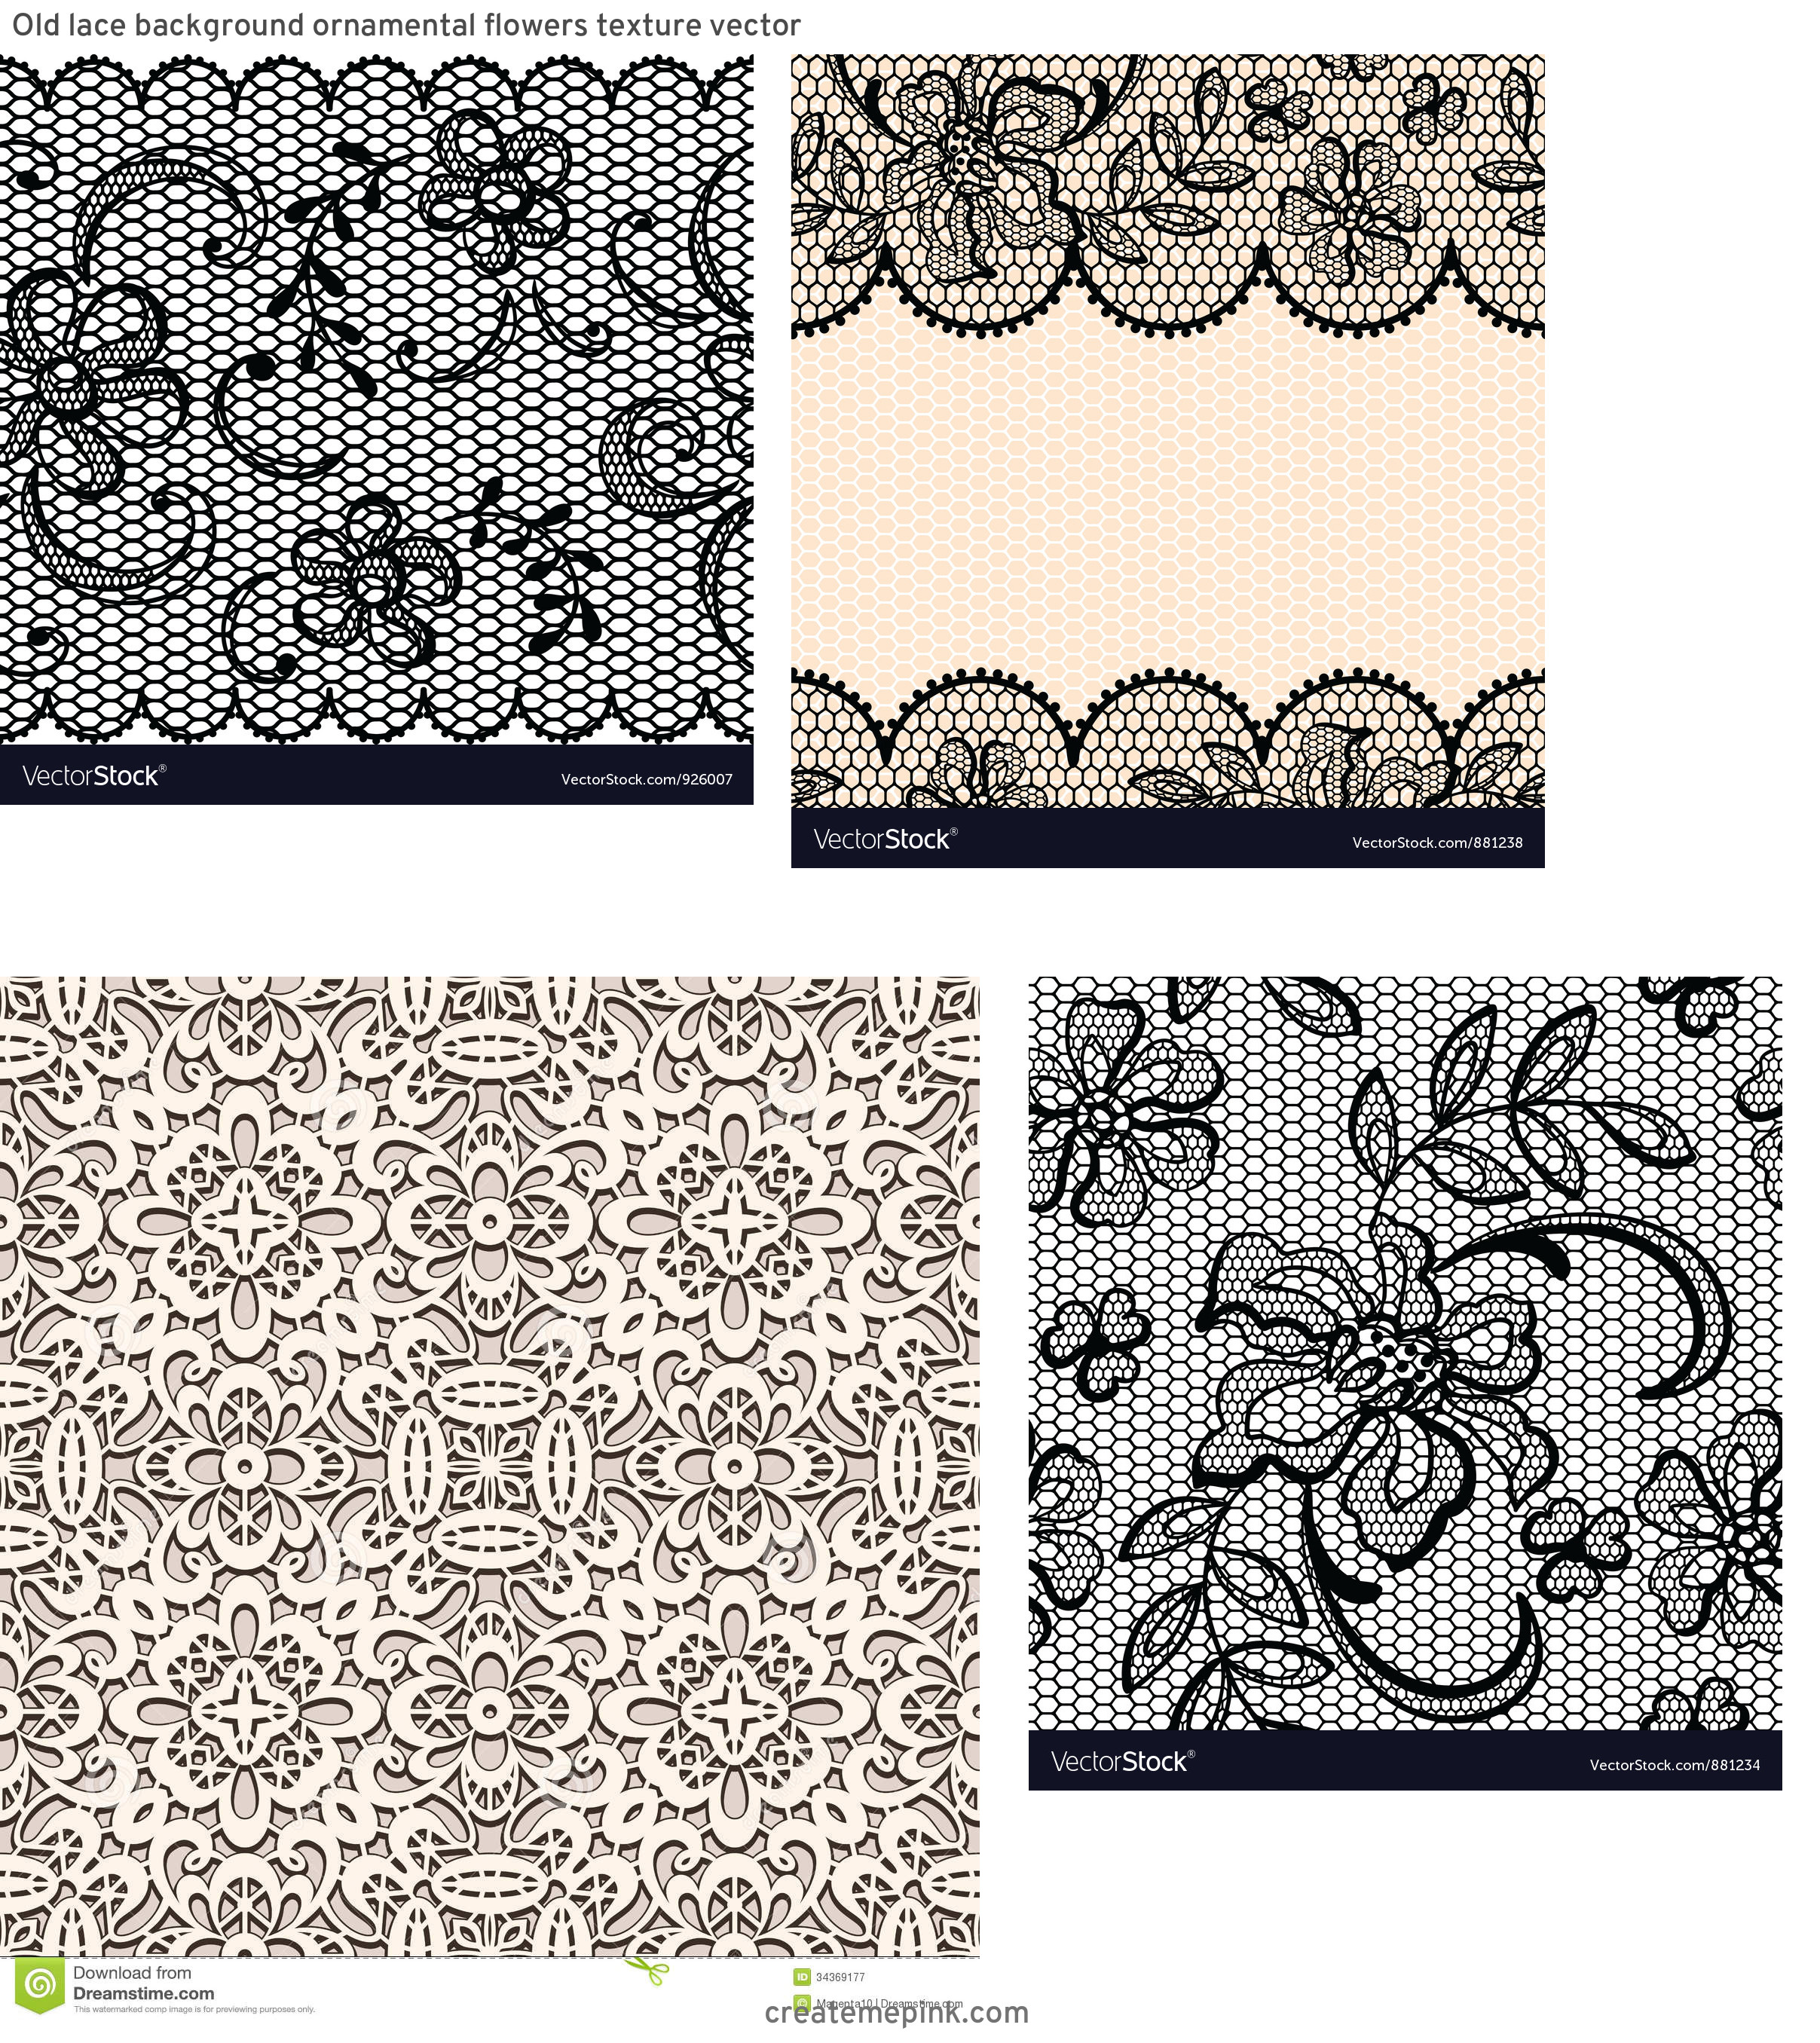 Vector Old Lace Black: Old Lace Background Ornamental Flowers Texture Vector